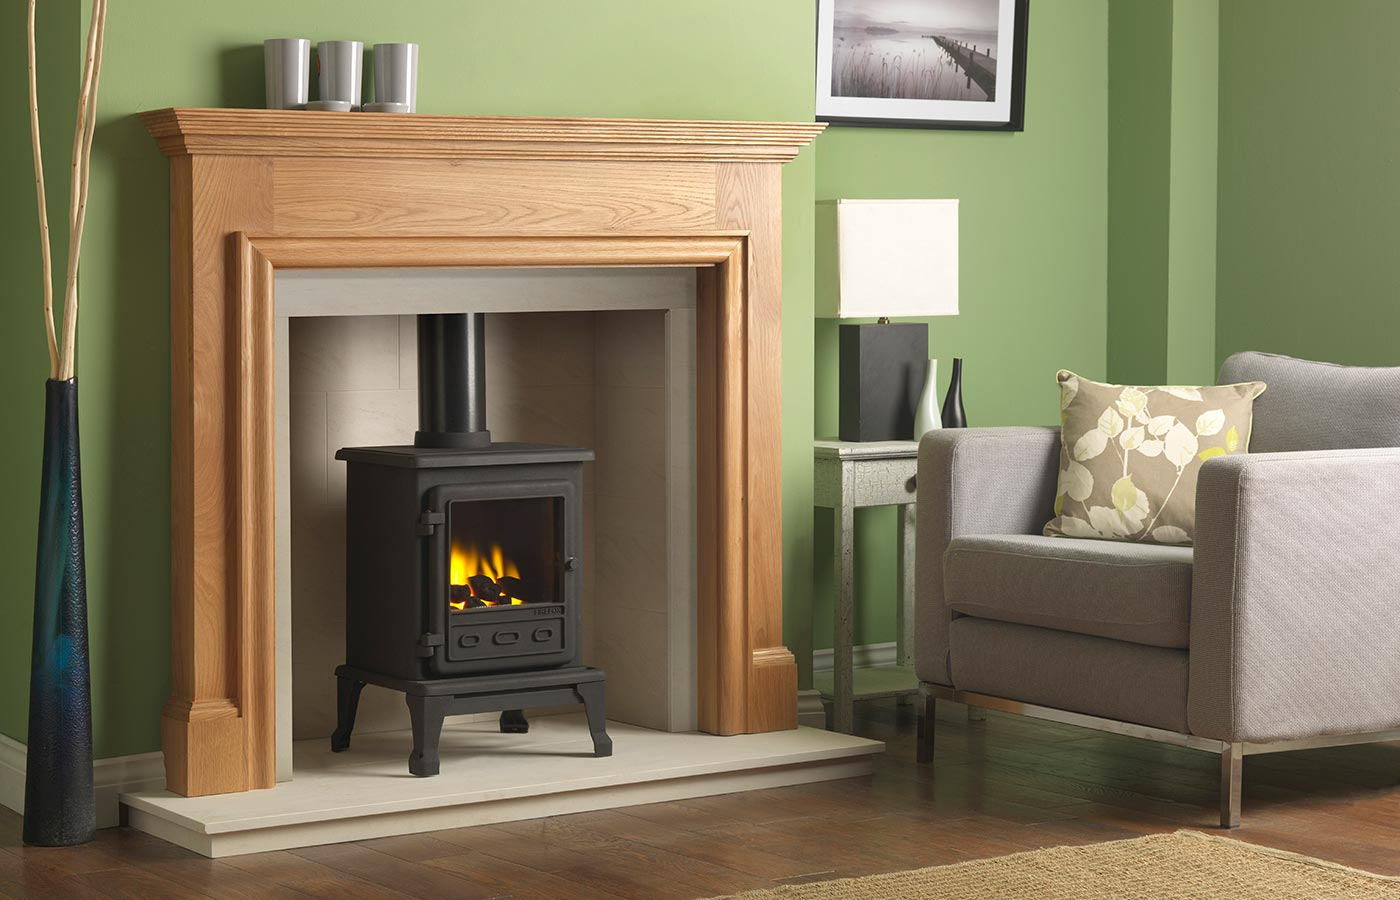 Firefox 5 Gas Stove with Oak Howard Mantel, Portuguese Limestone Chamber, Portuguese Limestone Slips, Portuguese Limestone Hearth